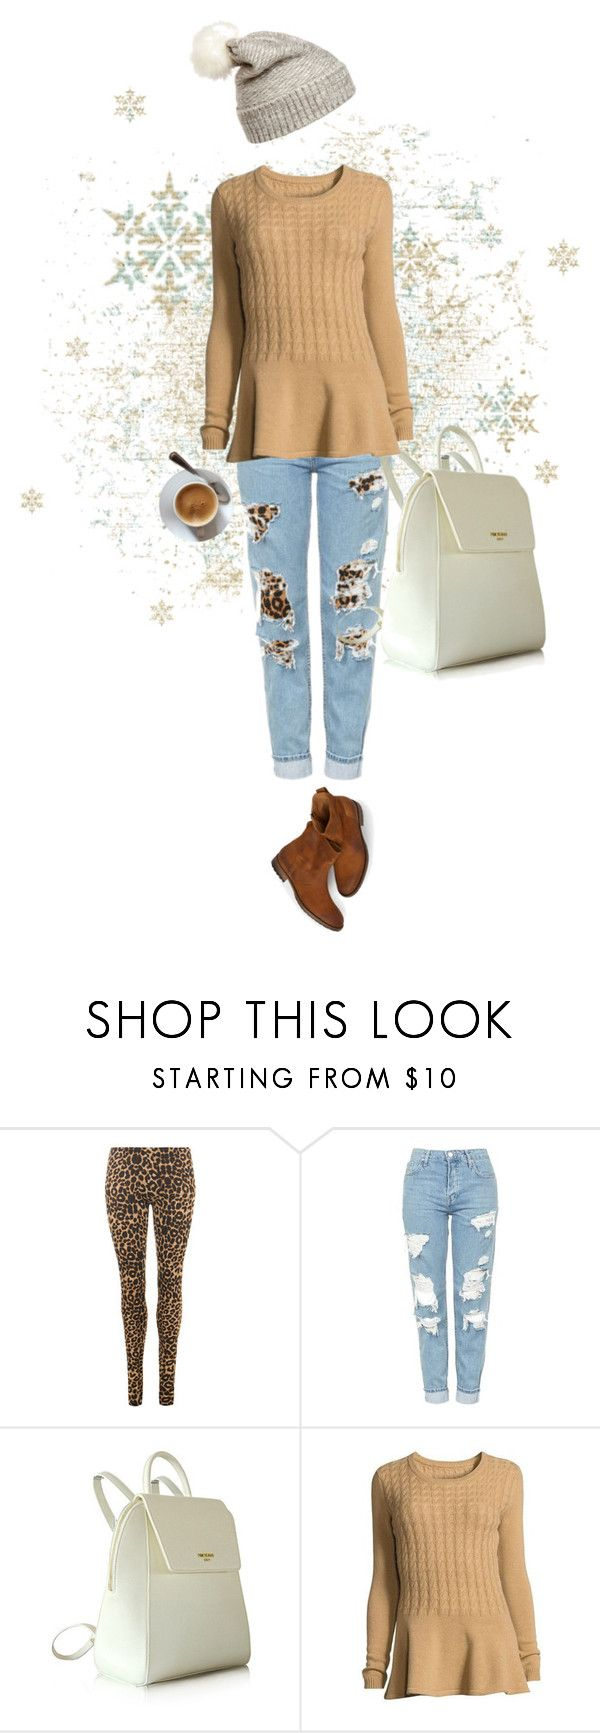 """""""Snow date"""" by grizmosis ❤ liked on Polyvore featuring WearAll, Topshop, Neiman Marcus and WithChic"""